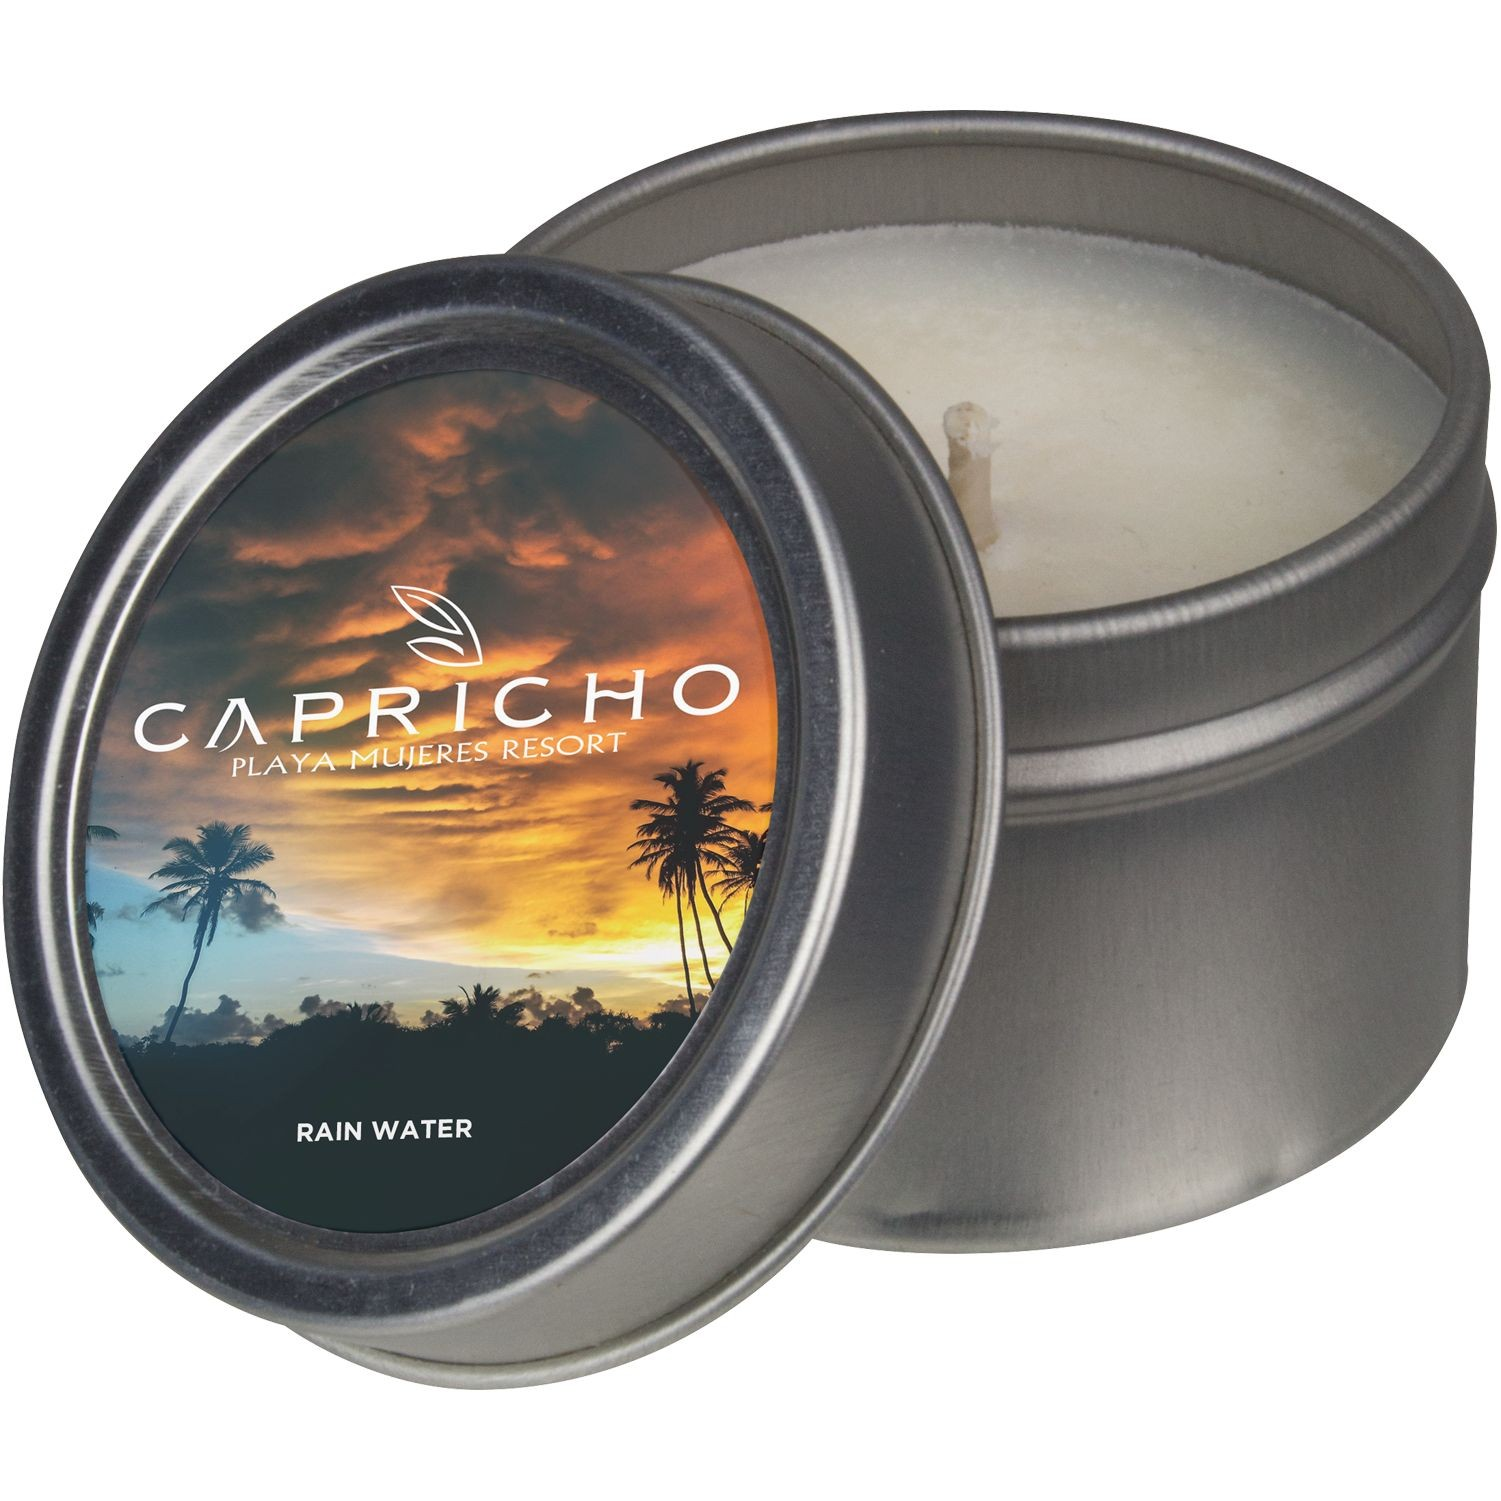 2 Oz. Candle Tin